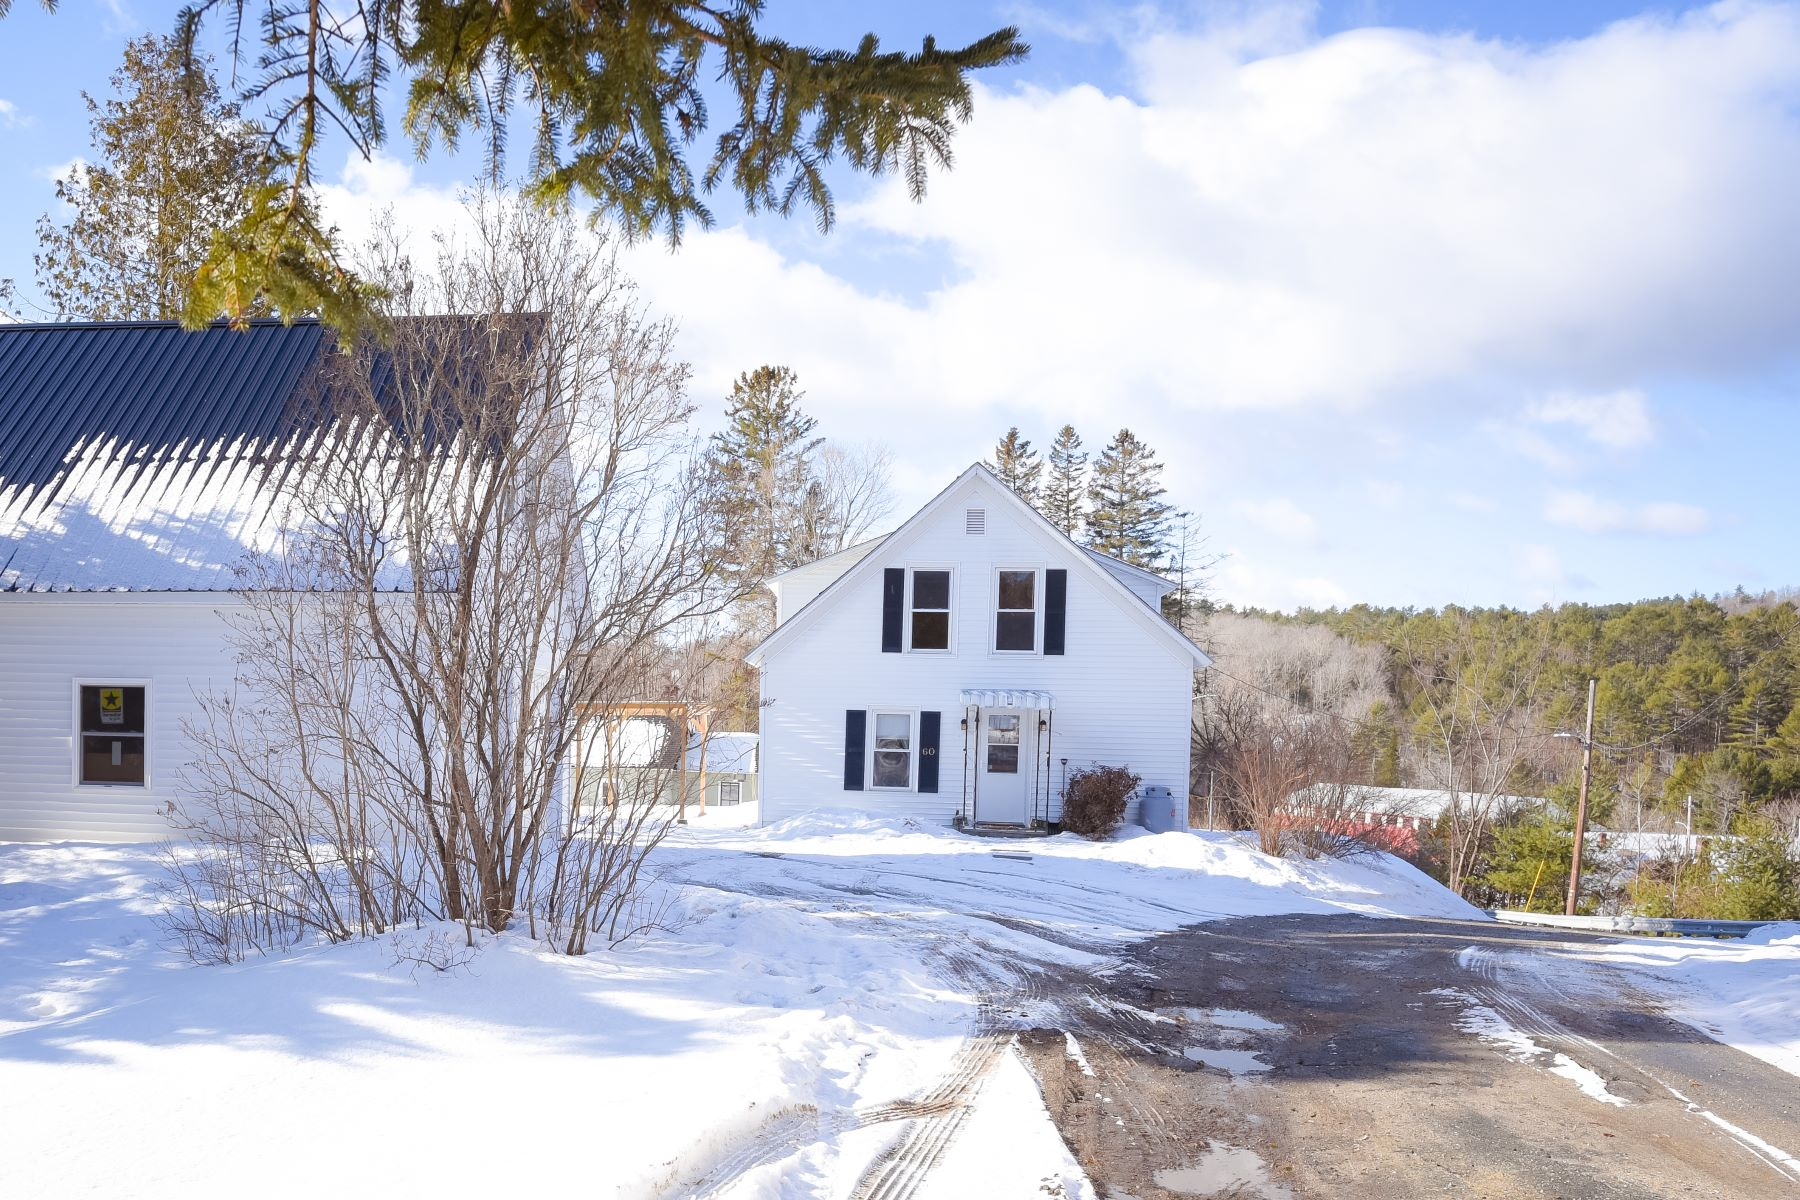 Single Family Homes for Sale at Three Bedroom Farmhouse in Ryegate 60 Cowie Hill Road Ryegate, Vermont 05069 United States